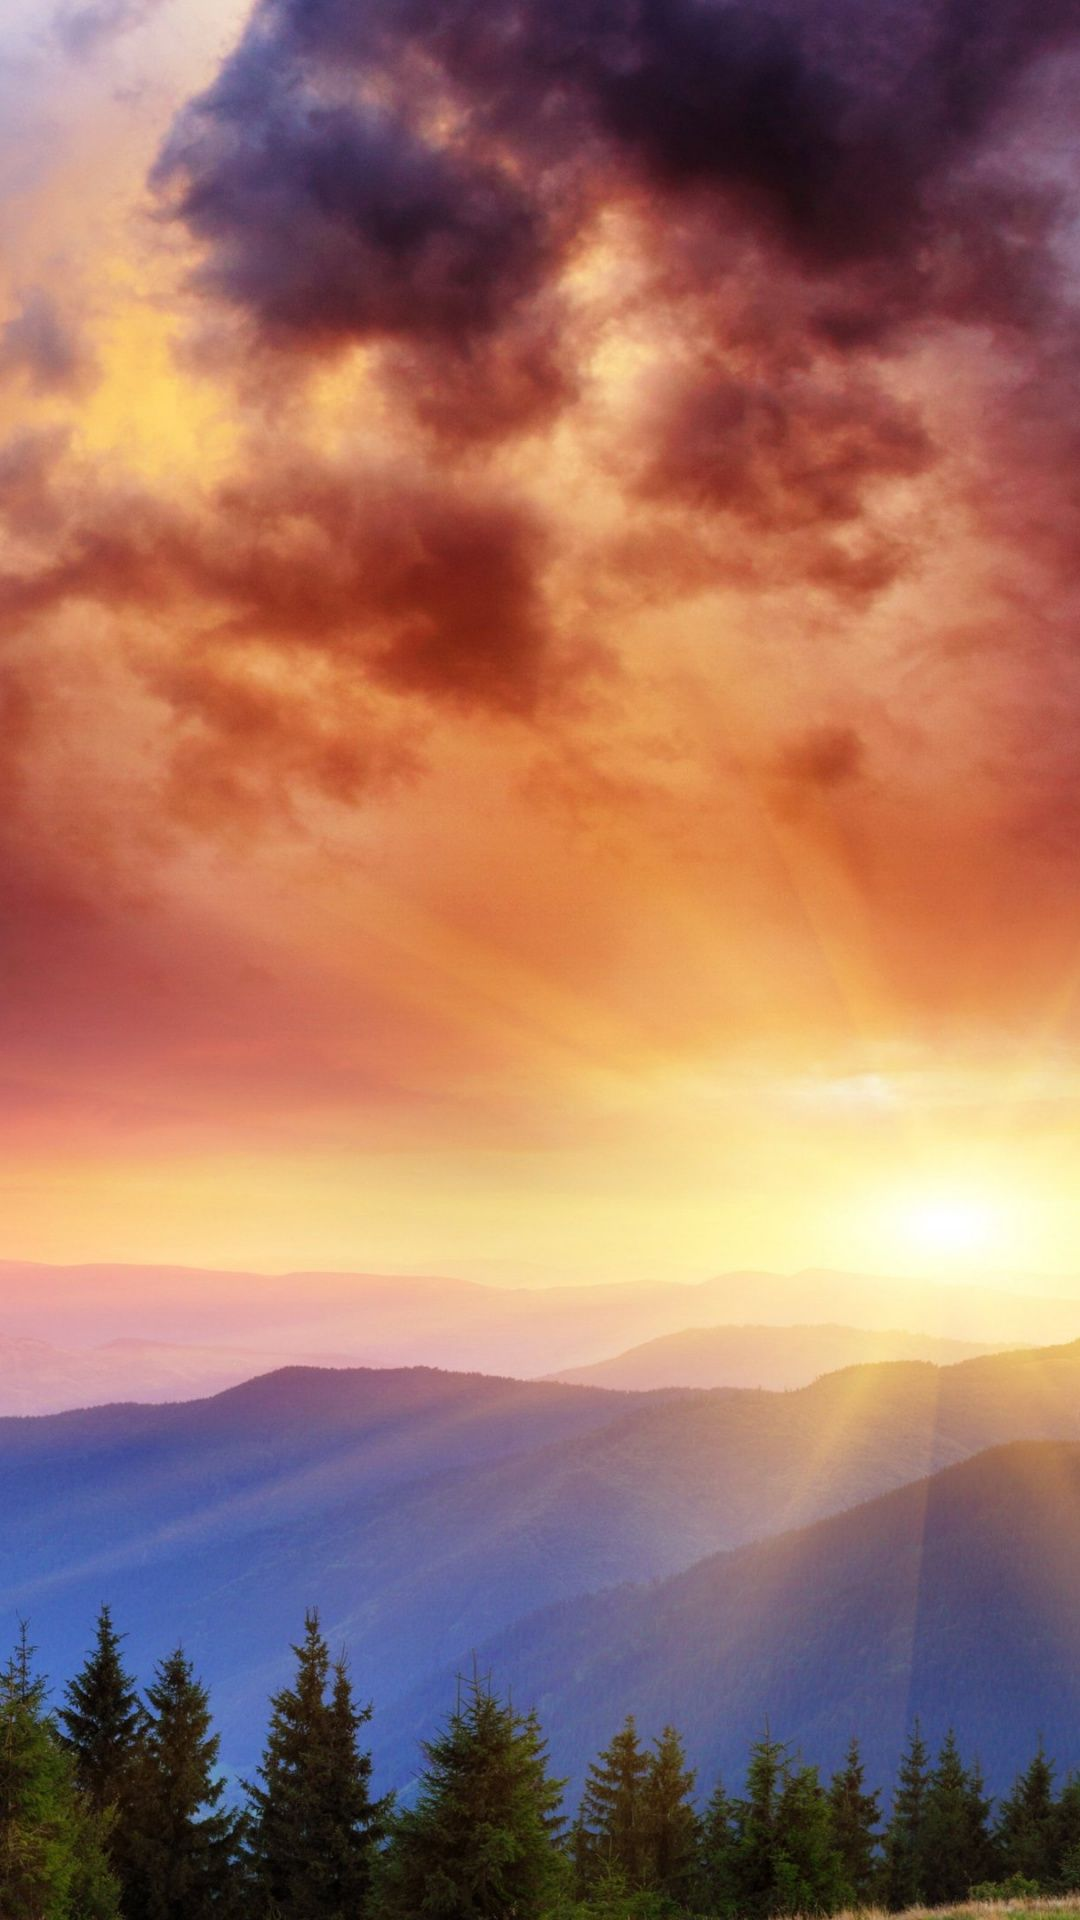 Wallpapers atmosphere, sunrise, morning, mount scenery